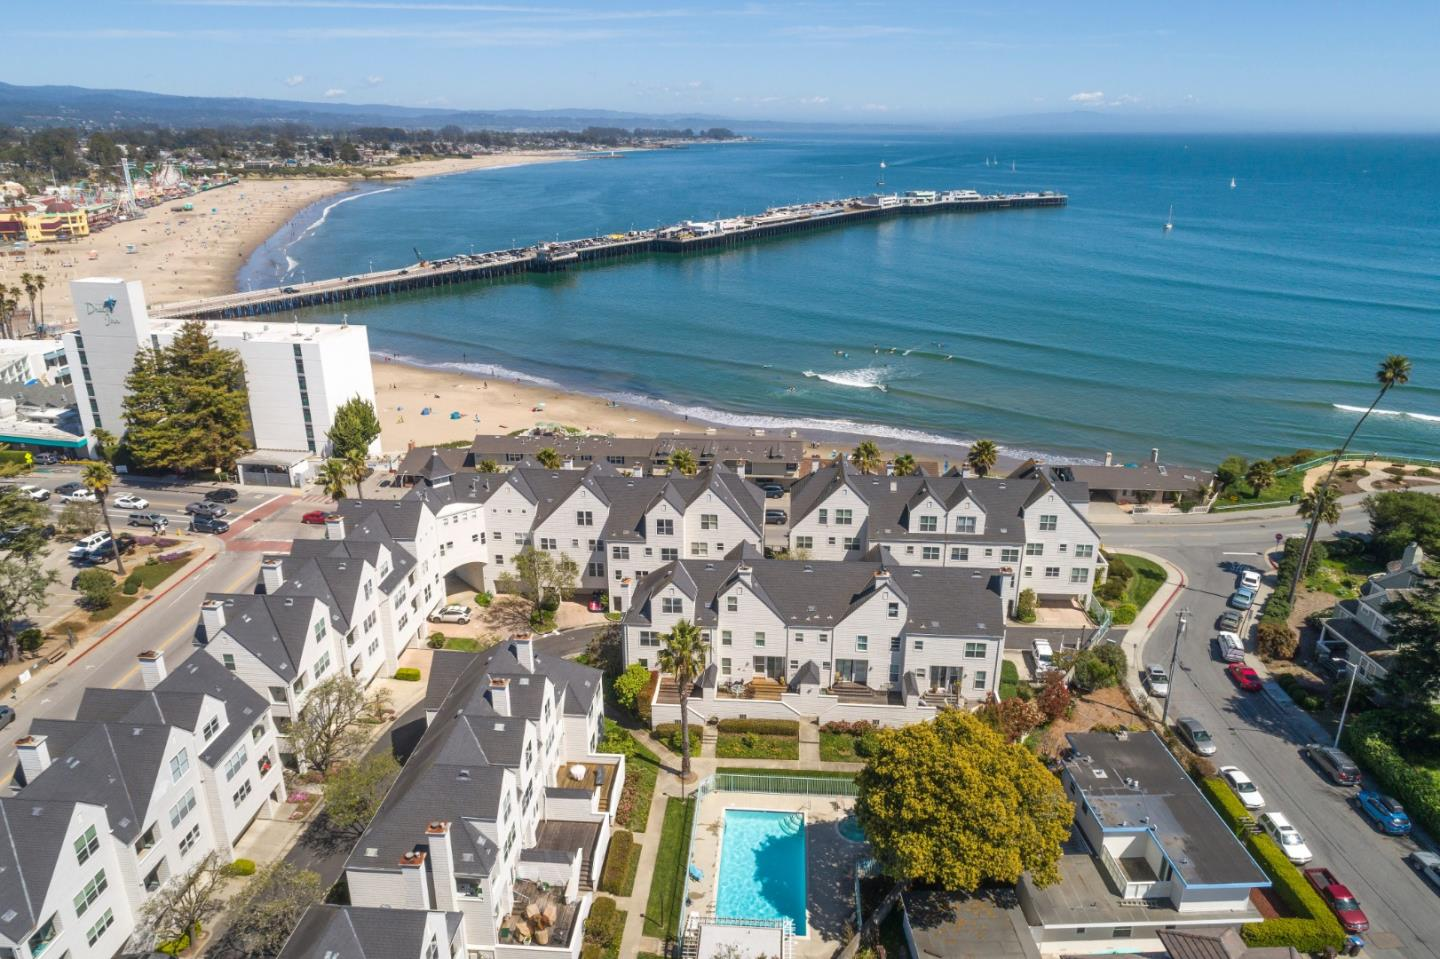 Rare Opportunity to Own in One of the Most Prestigious and Sought After Areas in Santa Cruz on West Cliff Drive. This beautifully remodeled townhouse in a gated community has the largest floor plan - 2590 sq ft with spectacular views of the ocean, the wharf, the beach and the boardwalk!  Experience resort style living with gentle ocean breezes and views as you enjoy the great sunsets! You're steps away from the beach with panoramic ocean views. Close to the beach boardwalk yet far enough for quiet relaxation. Bright, open floor plan with new beautiful wood laminate floors, quartz counter tops in the kitchen and baths, new stainless steel appliances, fixtures and interior paint. This exceptional home with a huge loft on the top level which can be used as a 4th bedroom with a living area, has stunning views of the ocean.  An excellent option as your primary or vacation home! In-unit laundry and a 2-car attached garage. Ready, move-in condition. Enjoy the lifestyle of your dreams!